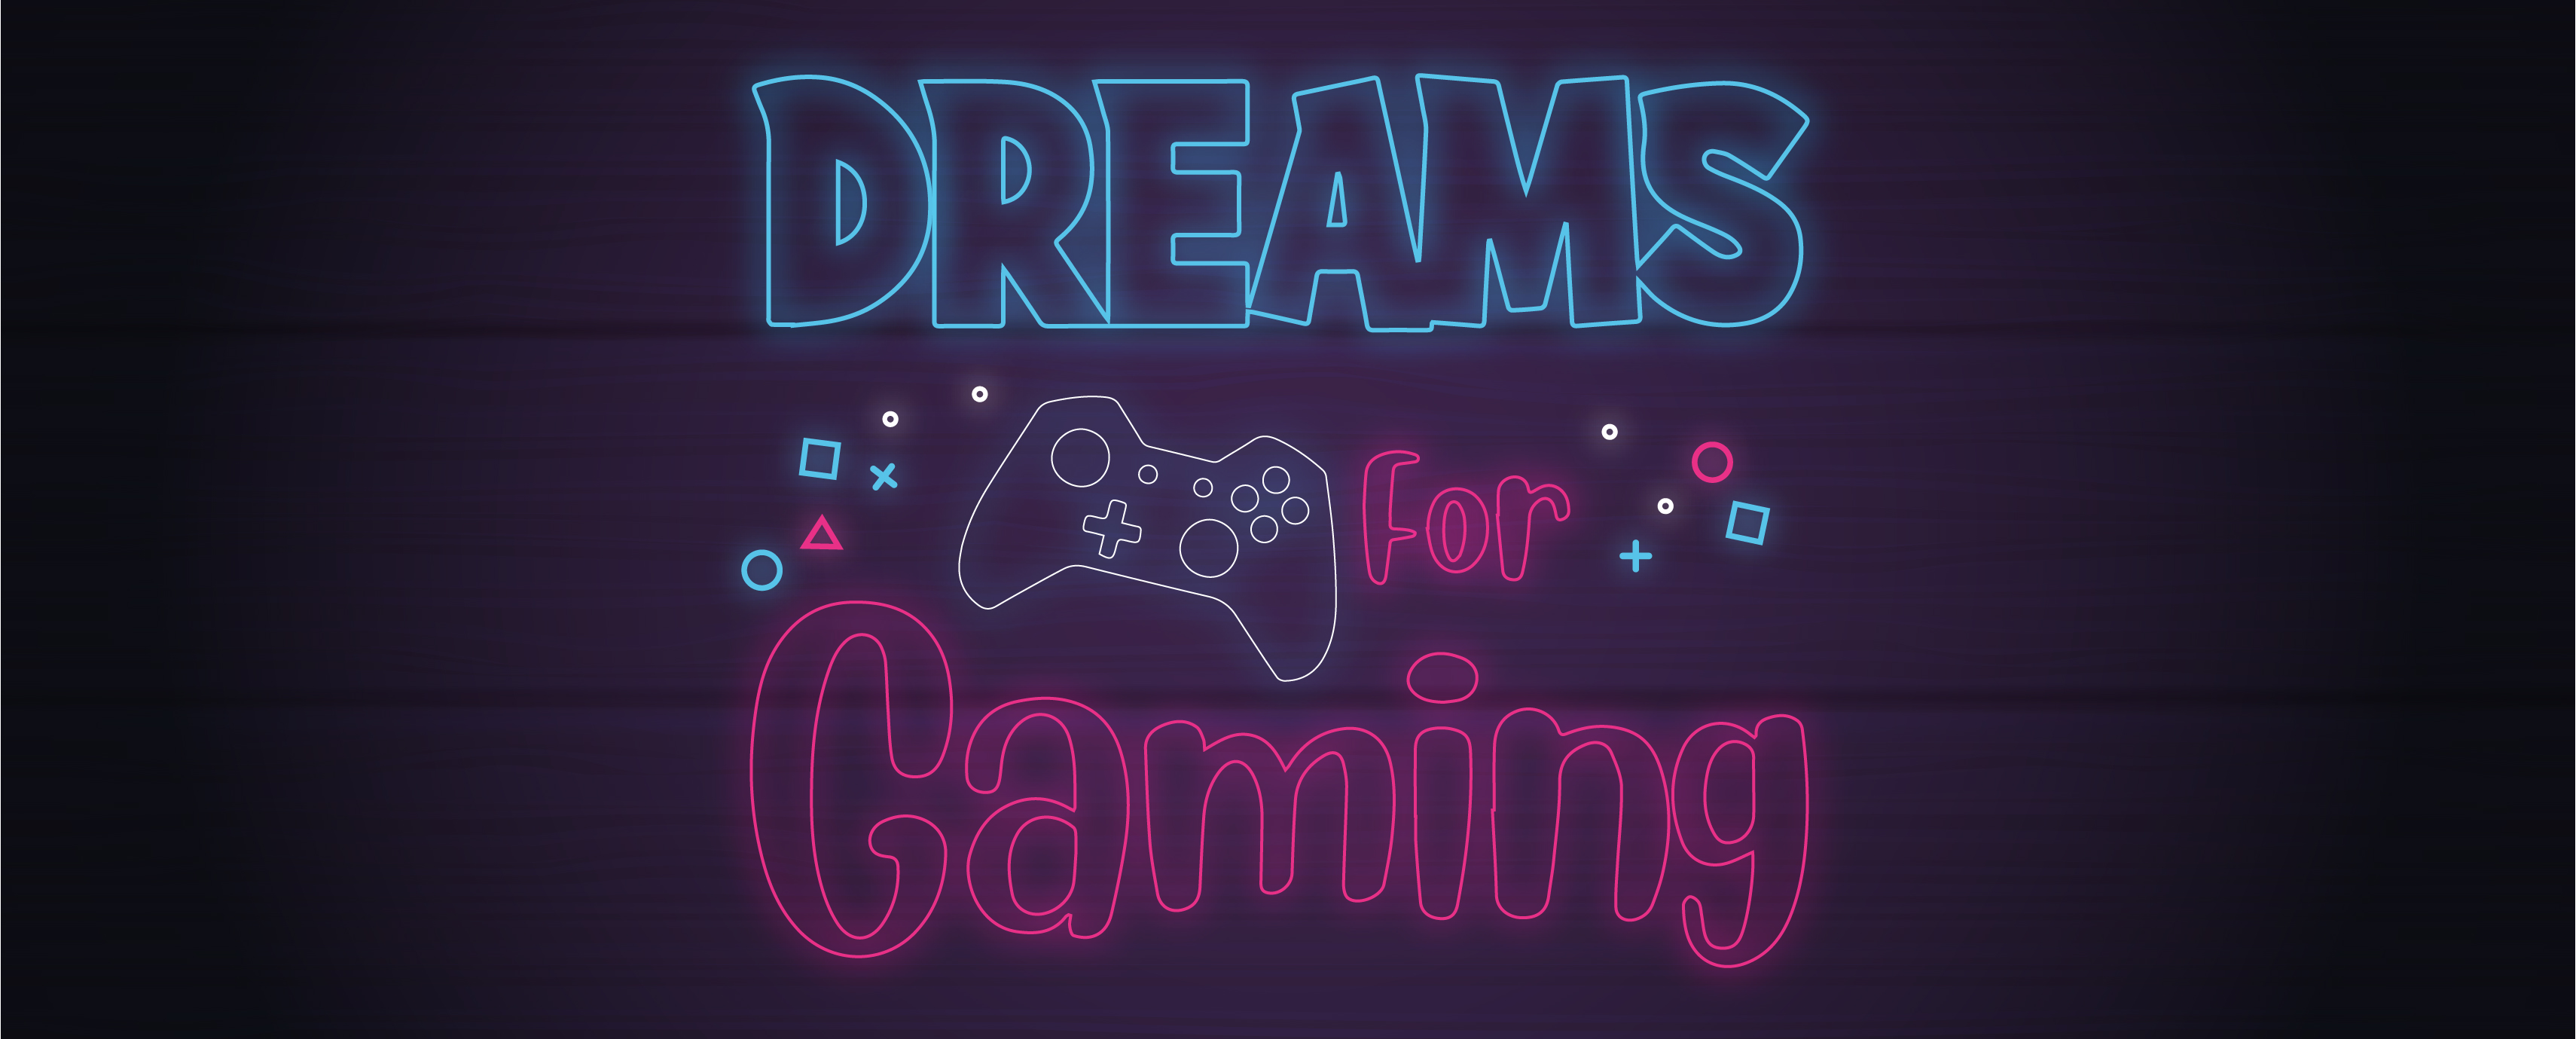 Dreamsforgaming